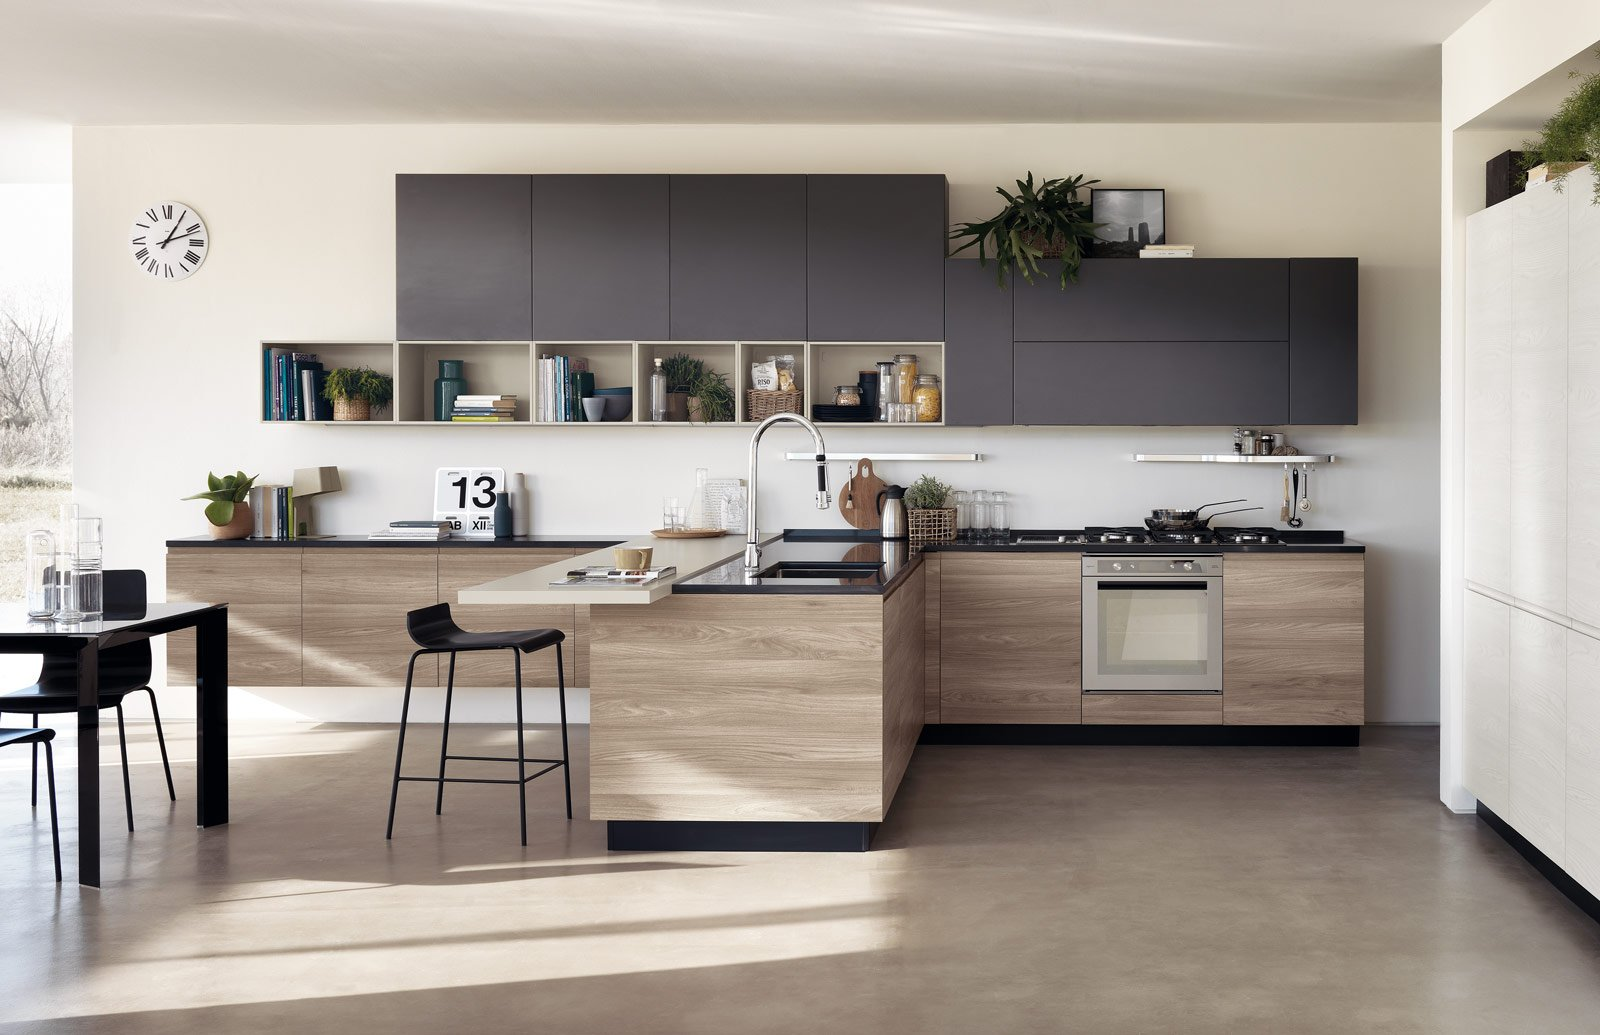 Cucine Color Legno - Home Design E Interior Ideas - Refoias.net